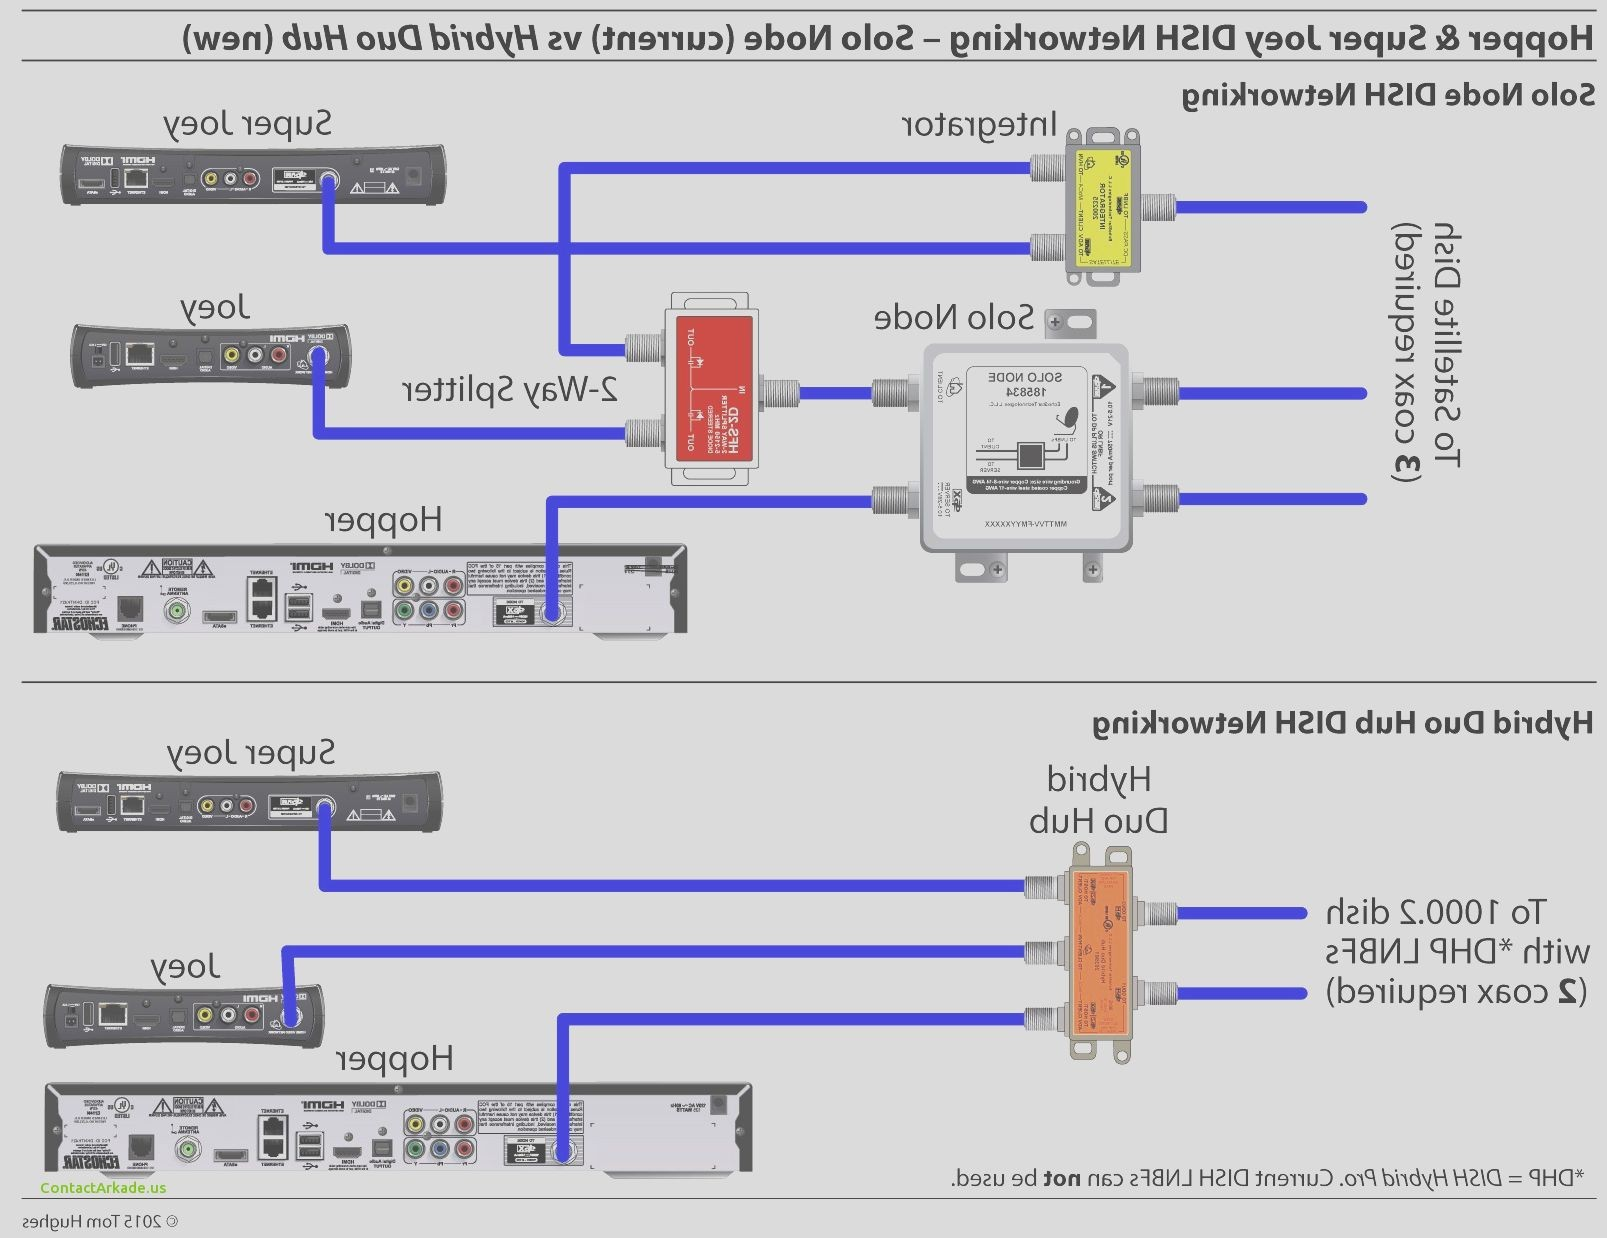 Cable Tv Wiring Diagrams Rv Cable and Satellite Wiring Diagram Elegant Awesome Dish Network Of Cable Tv Wiring Diagrams